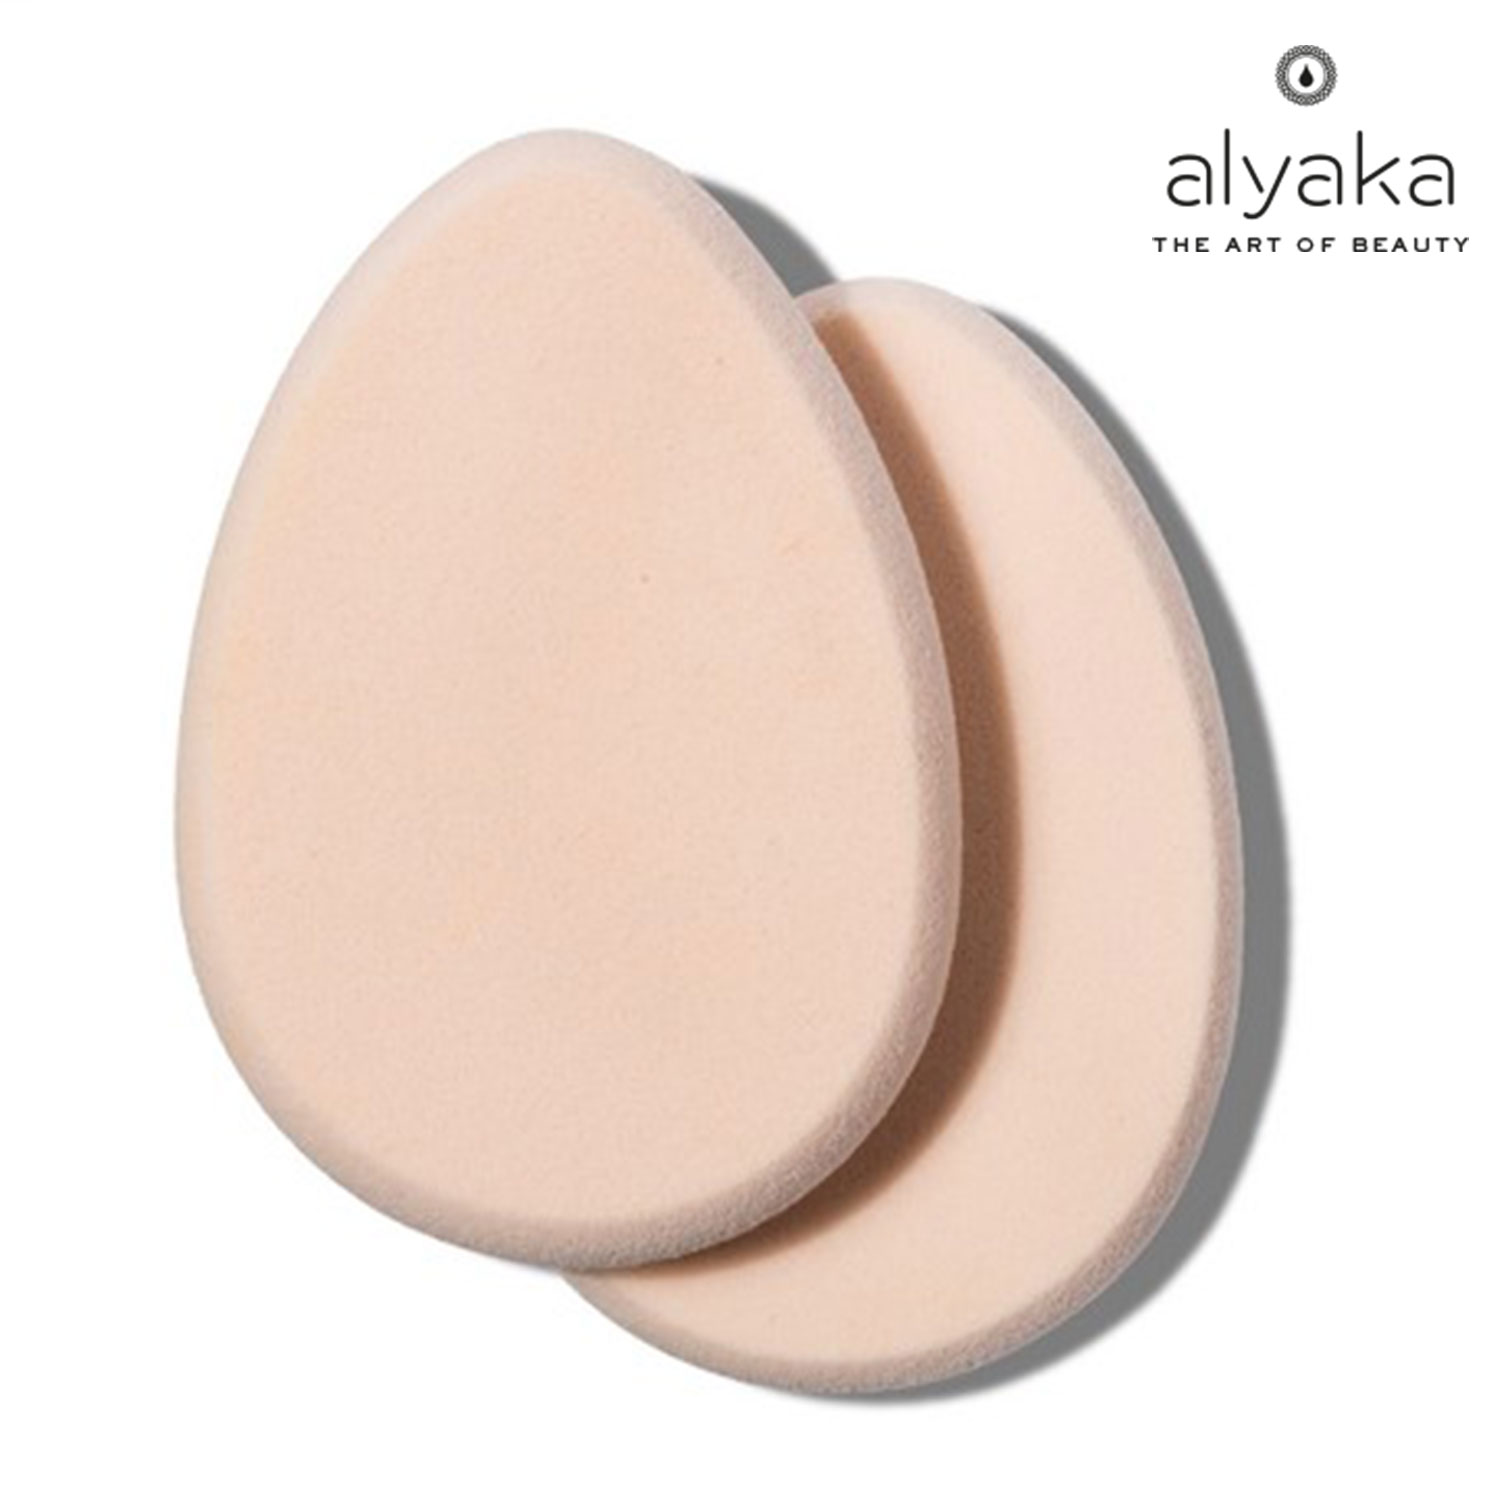 Flat & Asymmetrical Makeup Sponges